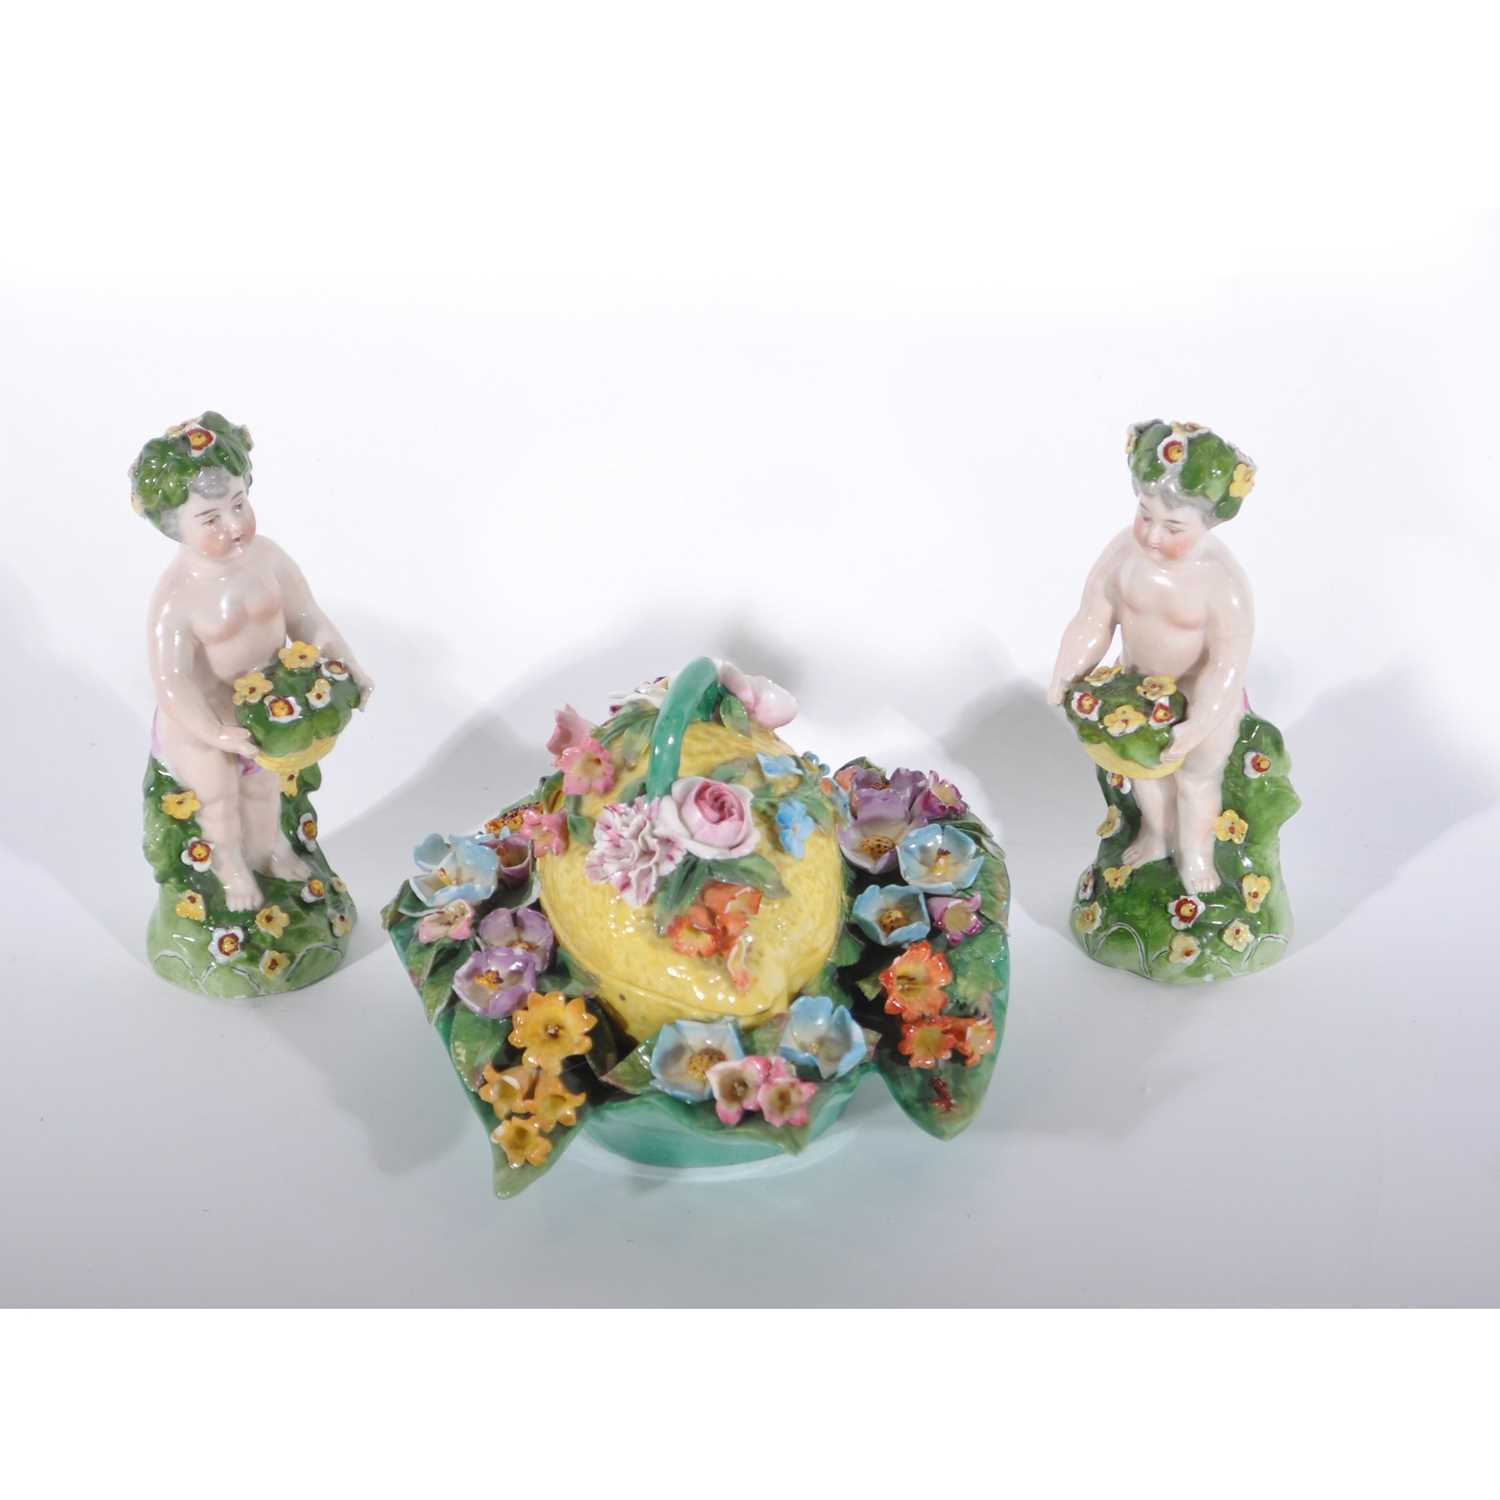 Lot 36-Pair of Continental porcelain figures of putti